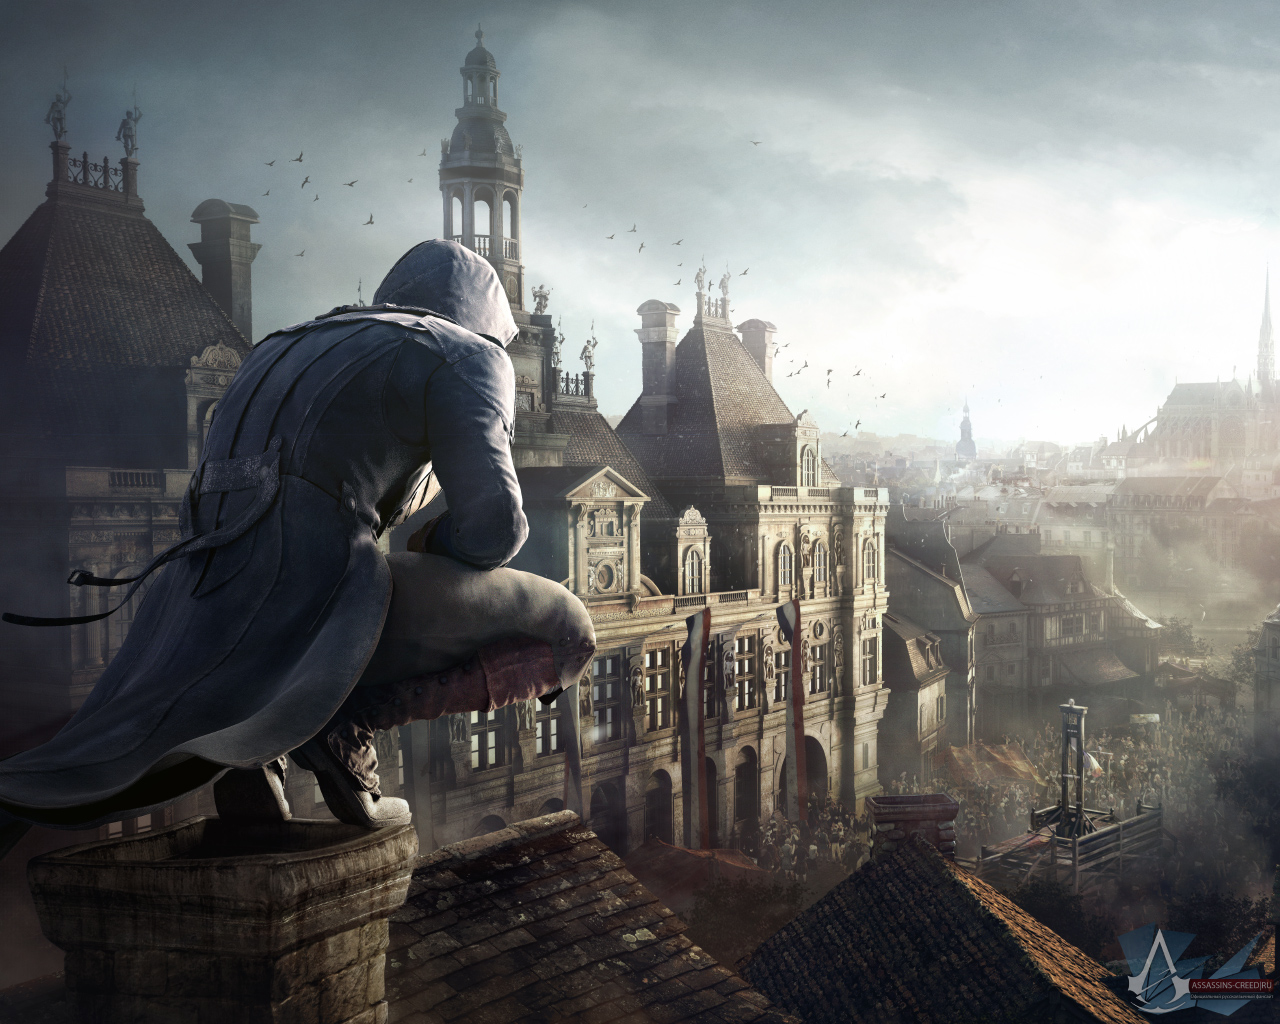 http://www.assassins-creed.ru/uploads/images/acu/gallery/wallpapers/acu_09_1280x1024.jpg